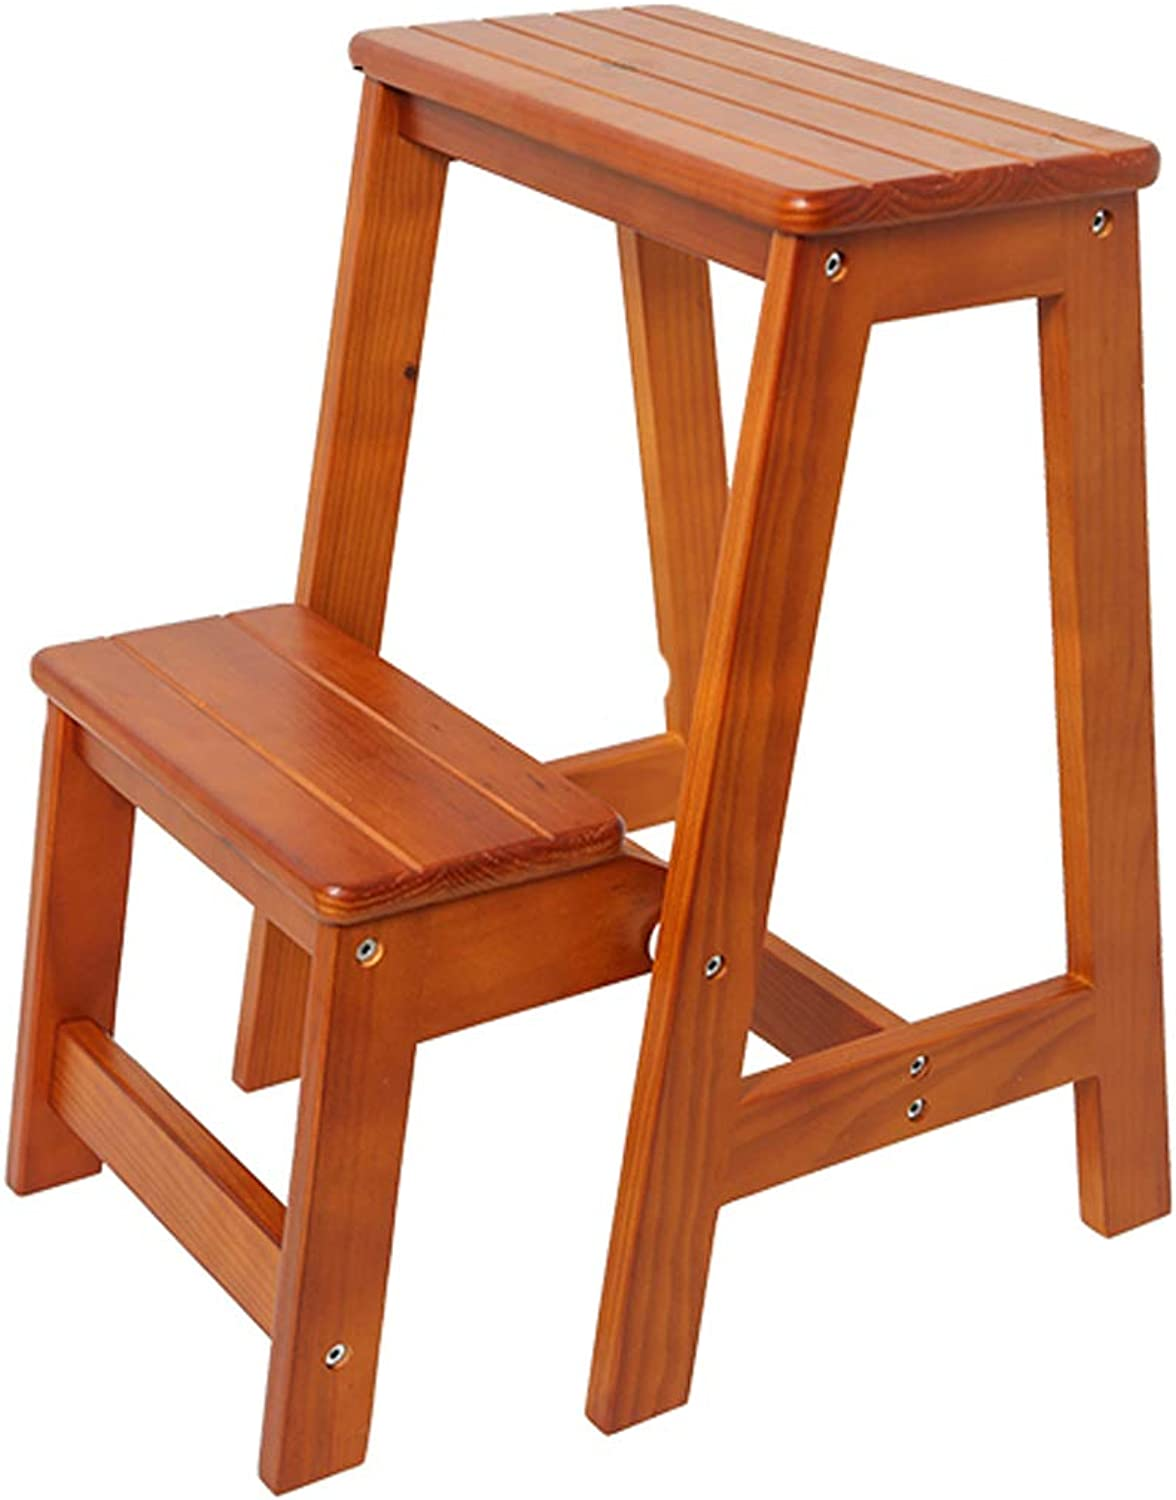 Solid Wood Step Stool, Stepladders, Home Ladder, Folding Step Ladder, Ascending Stool, Brown (Size   2 layer)